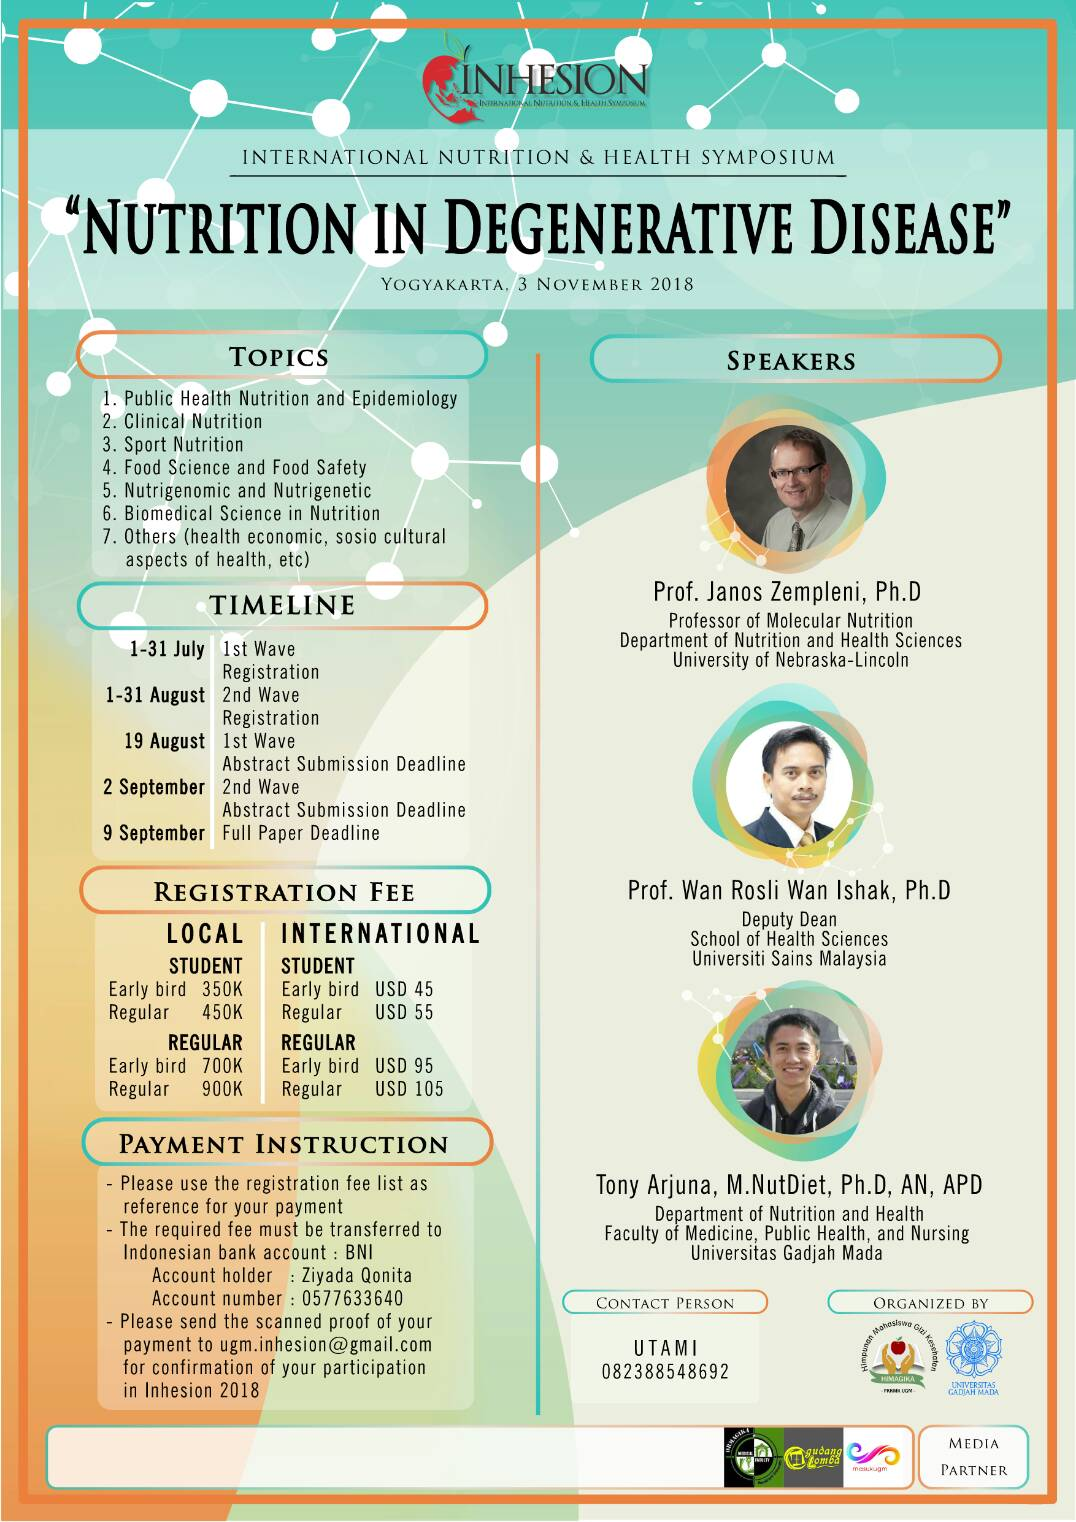 Nutrition in Degenerative Disease - Jogja Plaza Hotel, 3 November 2018